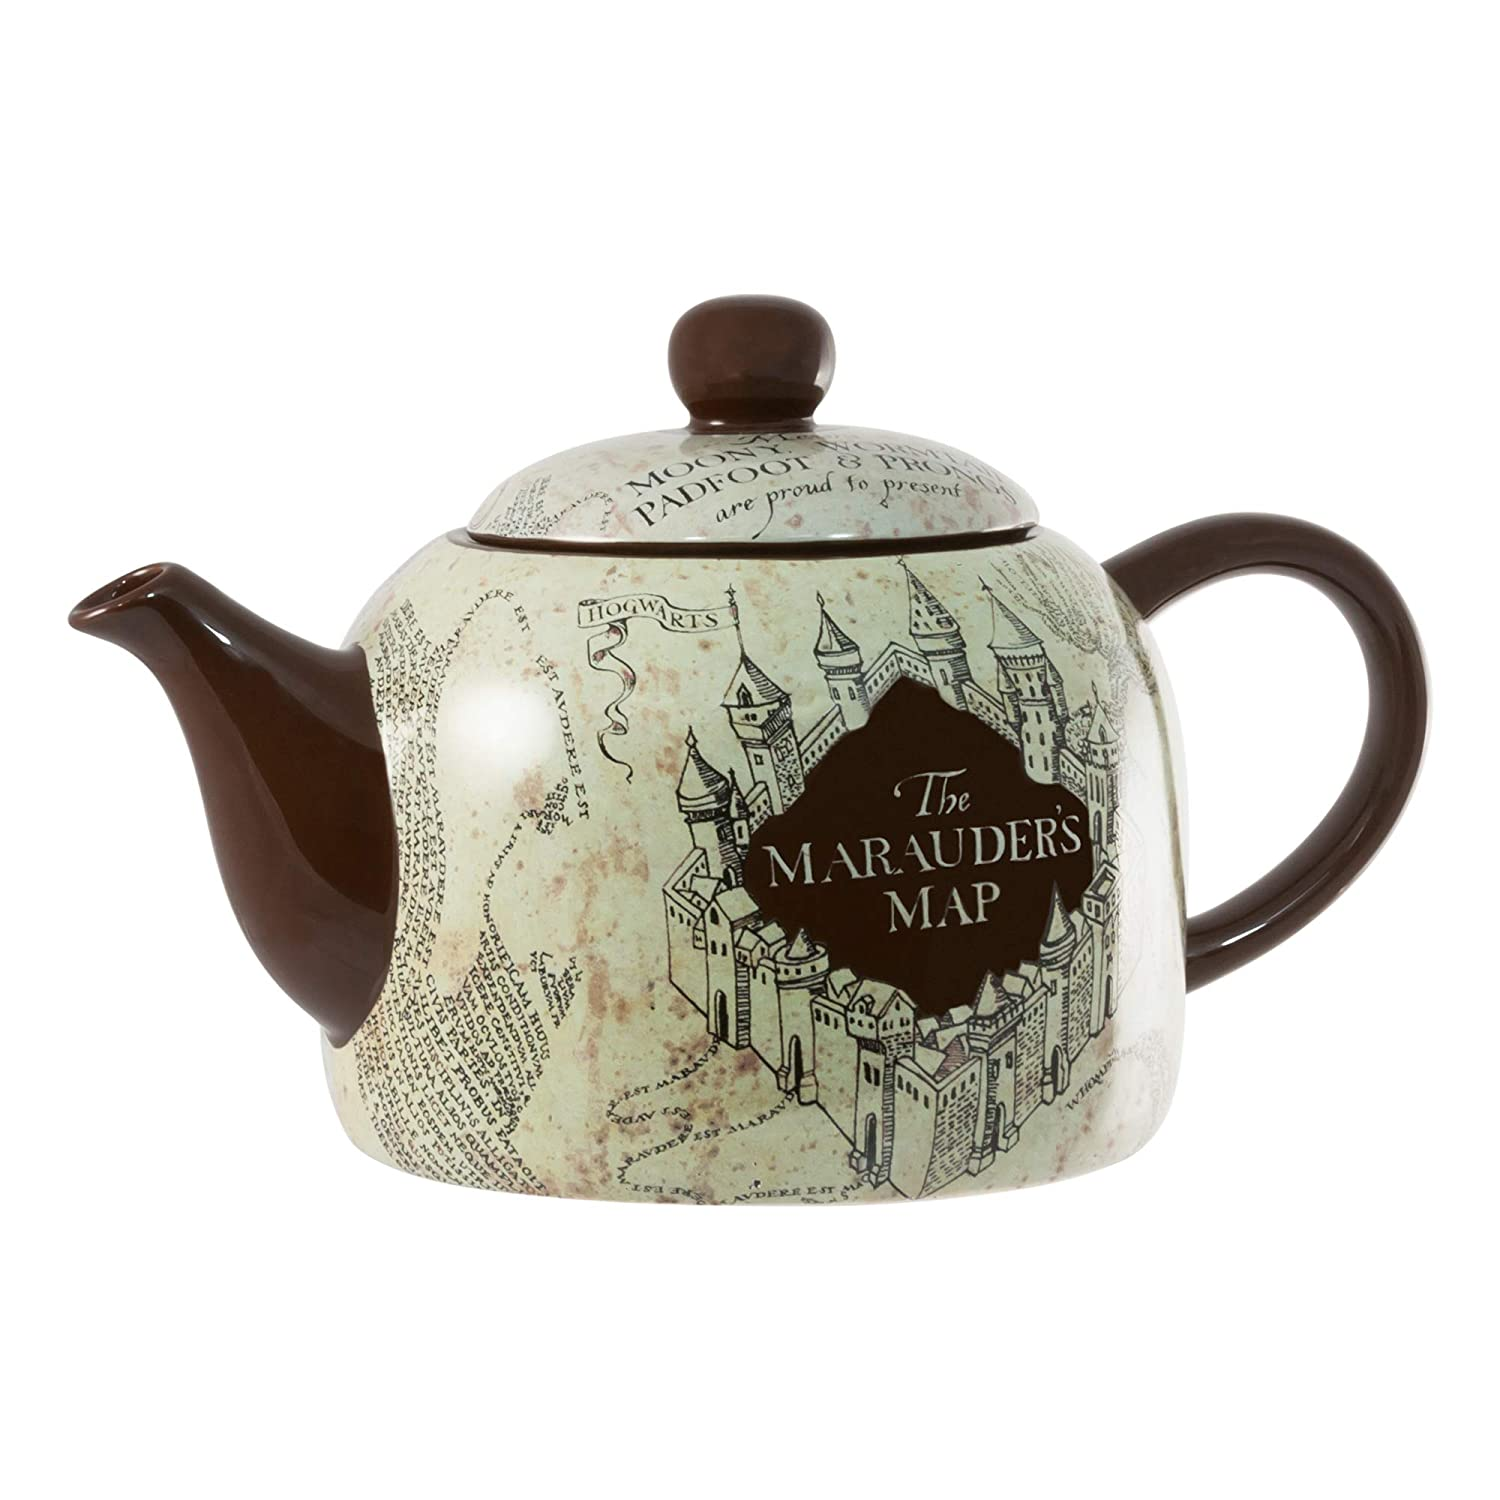 seven20 HP04863 Harry Potter Marauder's Map Ceramic Teapot, Standard Size, Burgundy